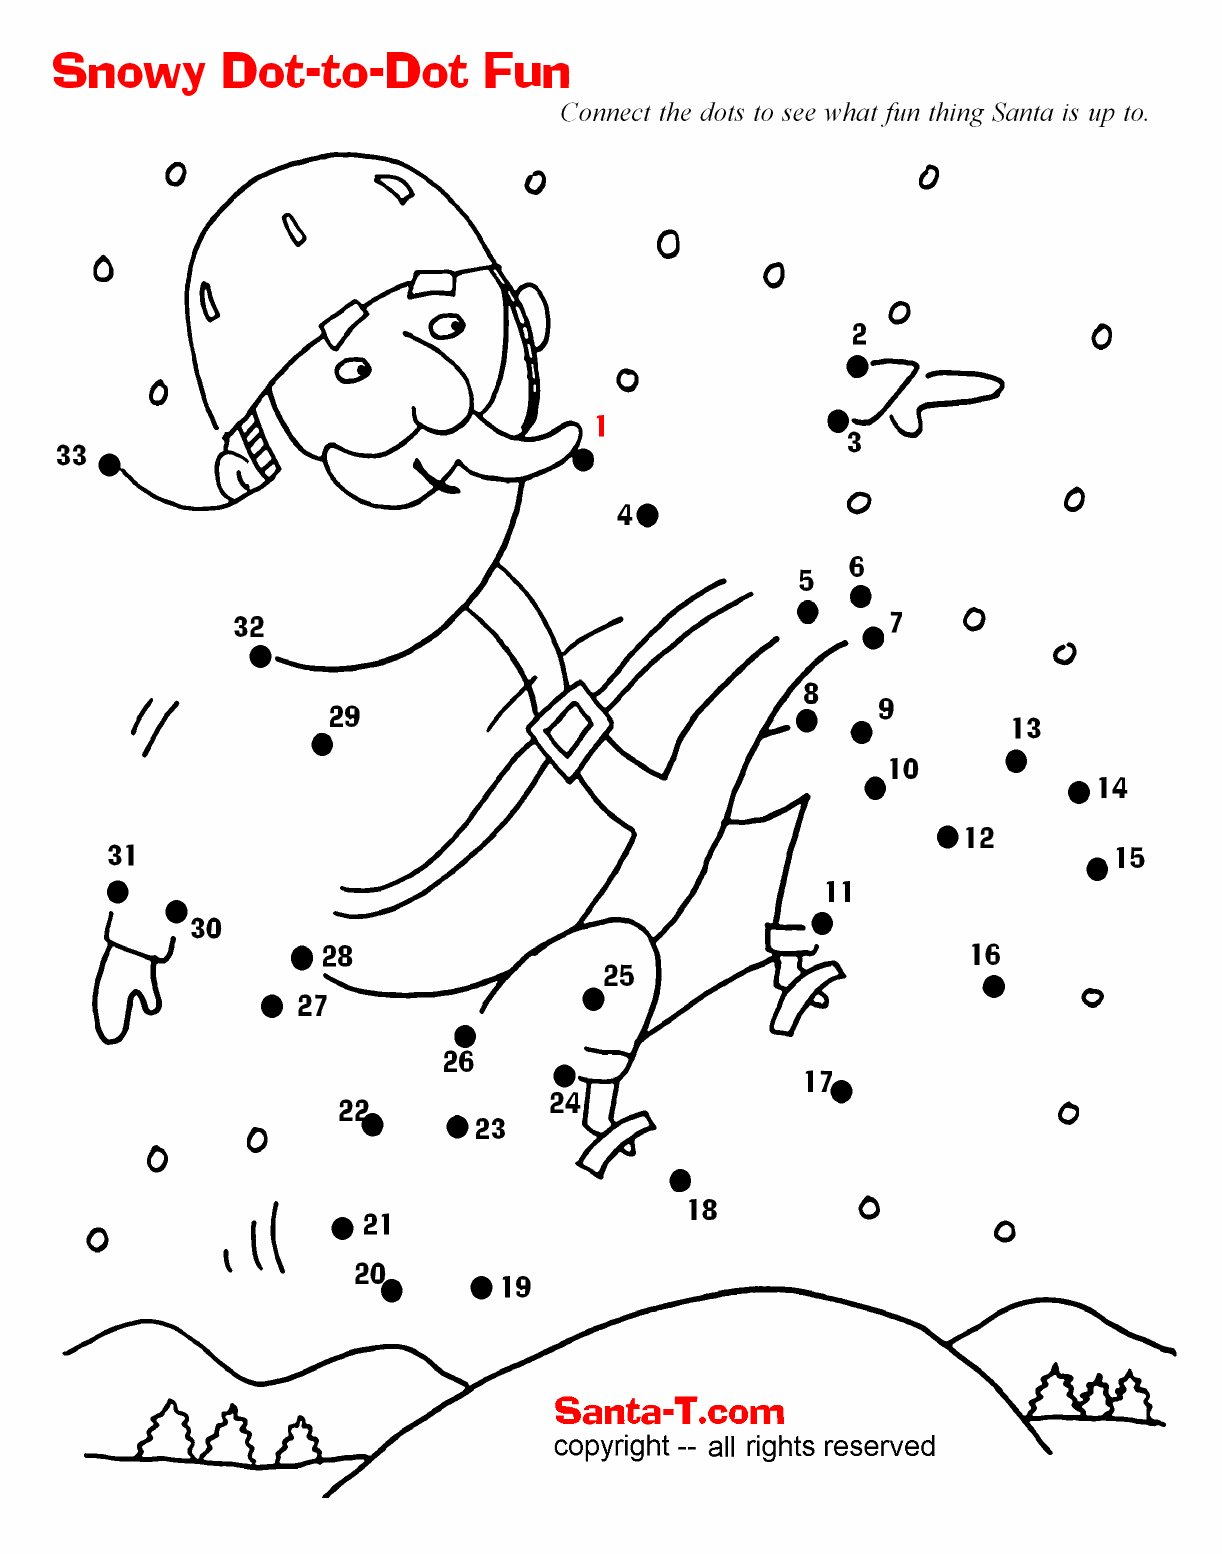 snowy santa fun dot to dot connect the dots to see what fun thing